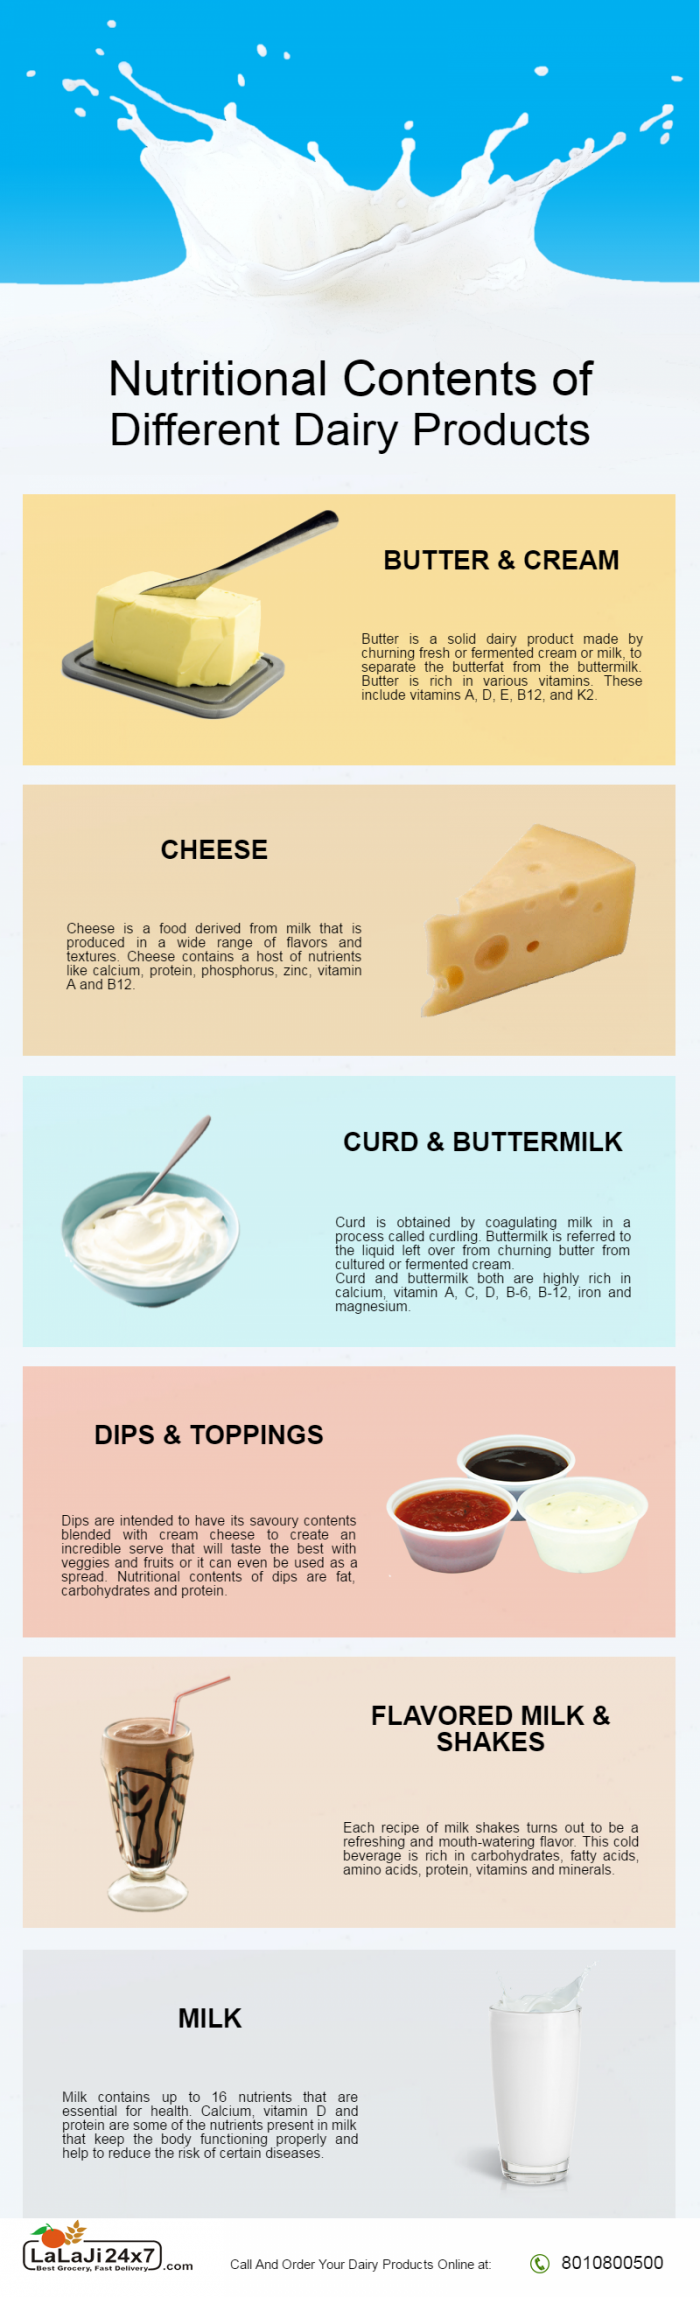 Nutritional Contents of Different Dairy Products